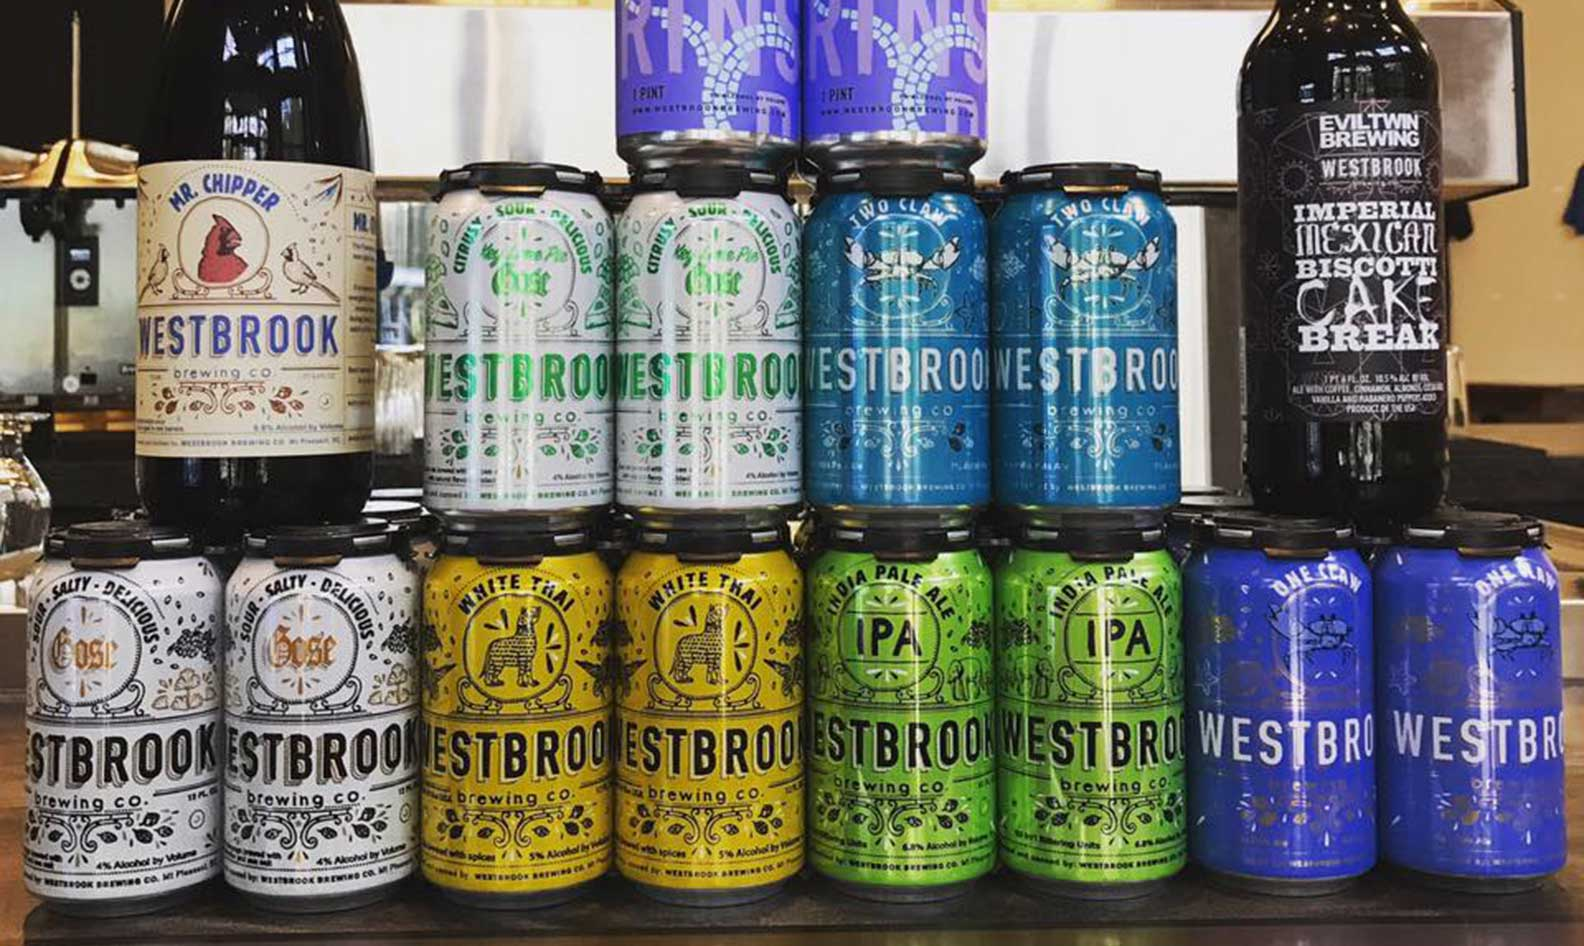 A collection of Westbrook beers